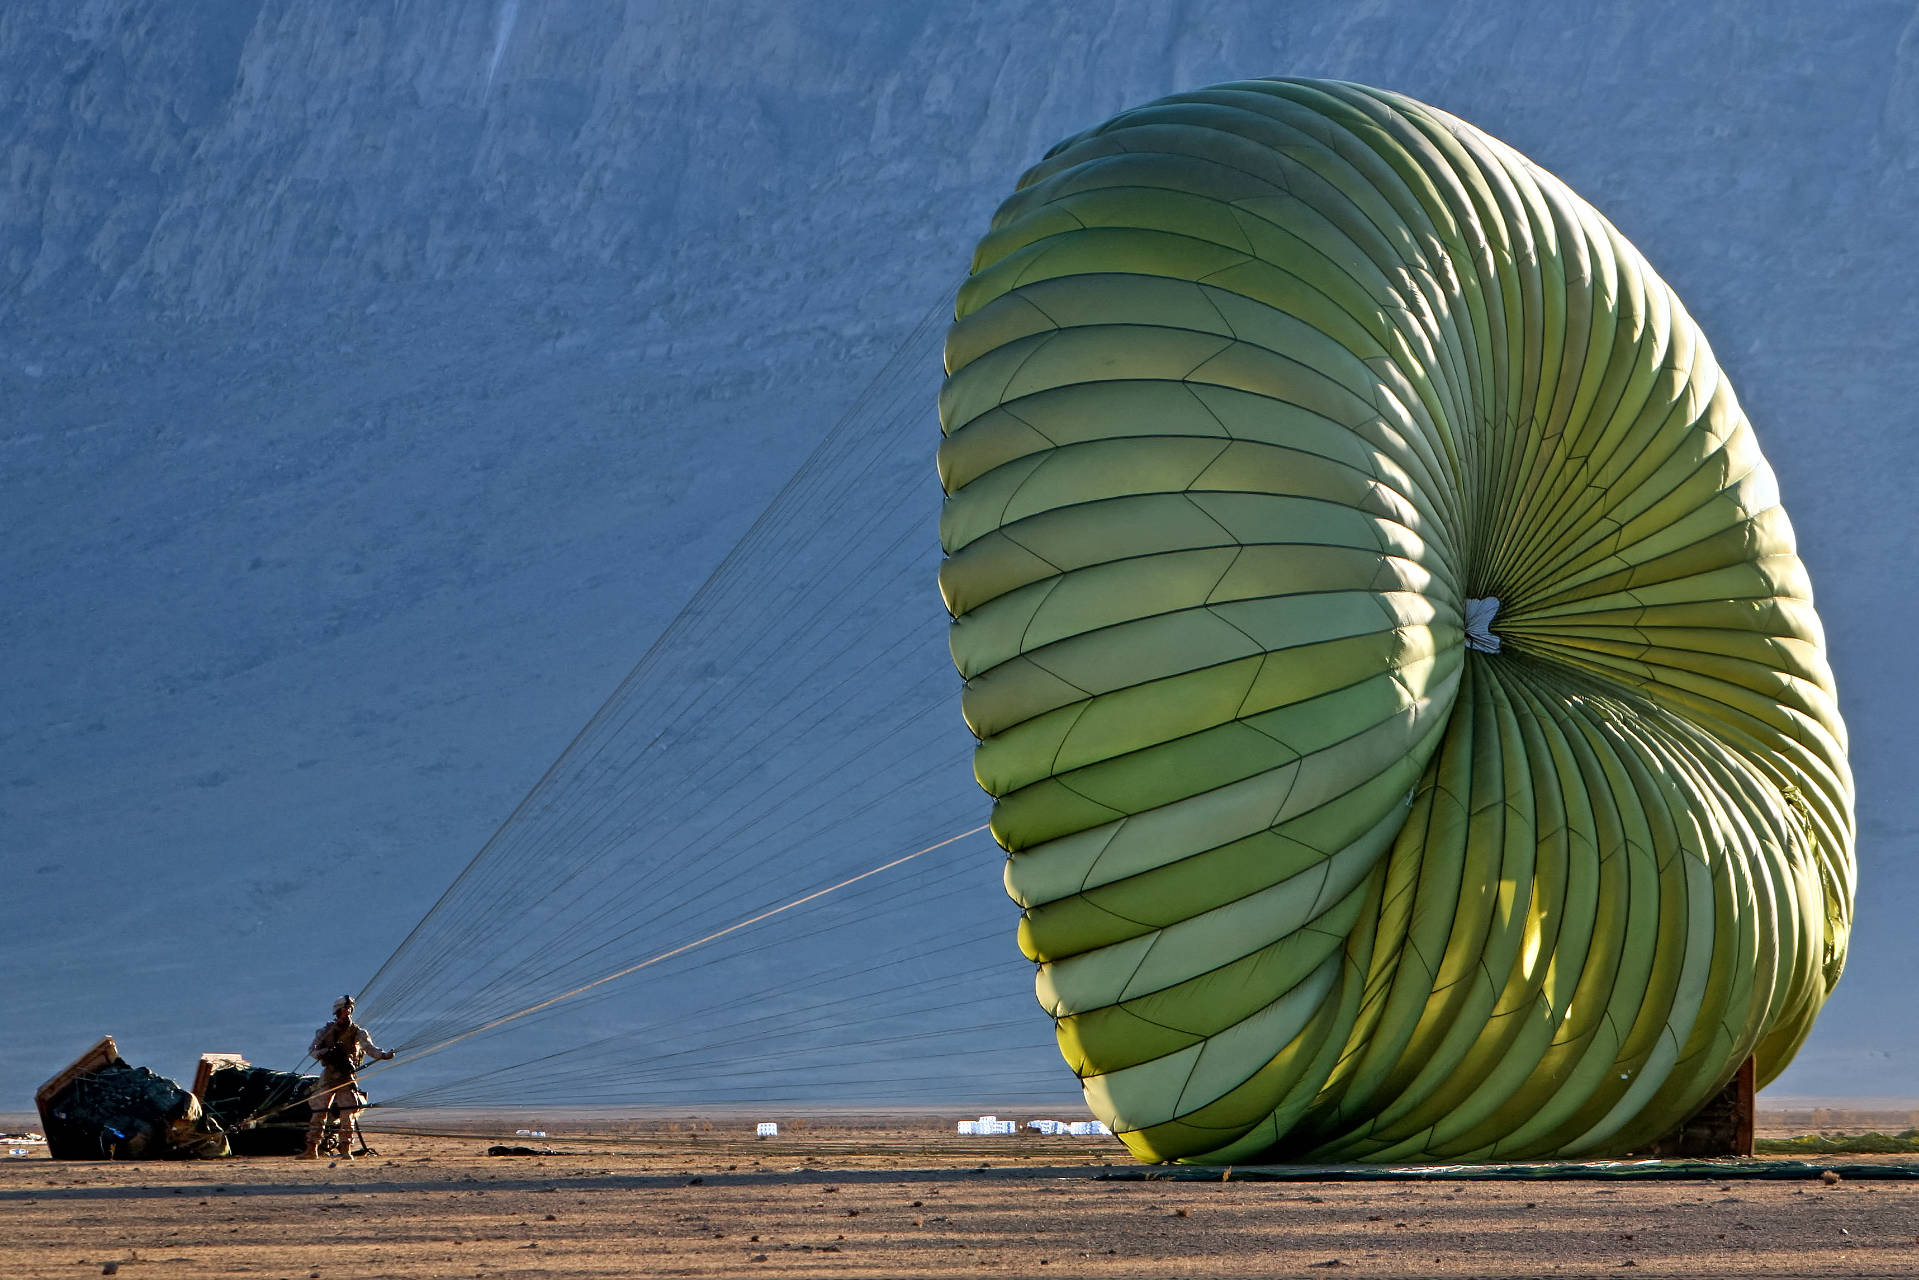 Military Cargo Parachutes in action